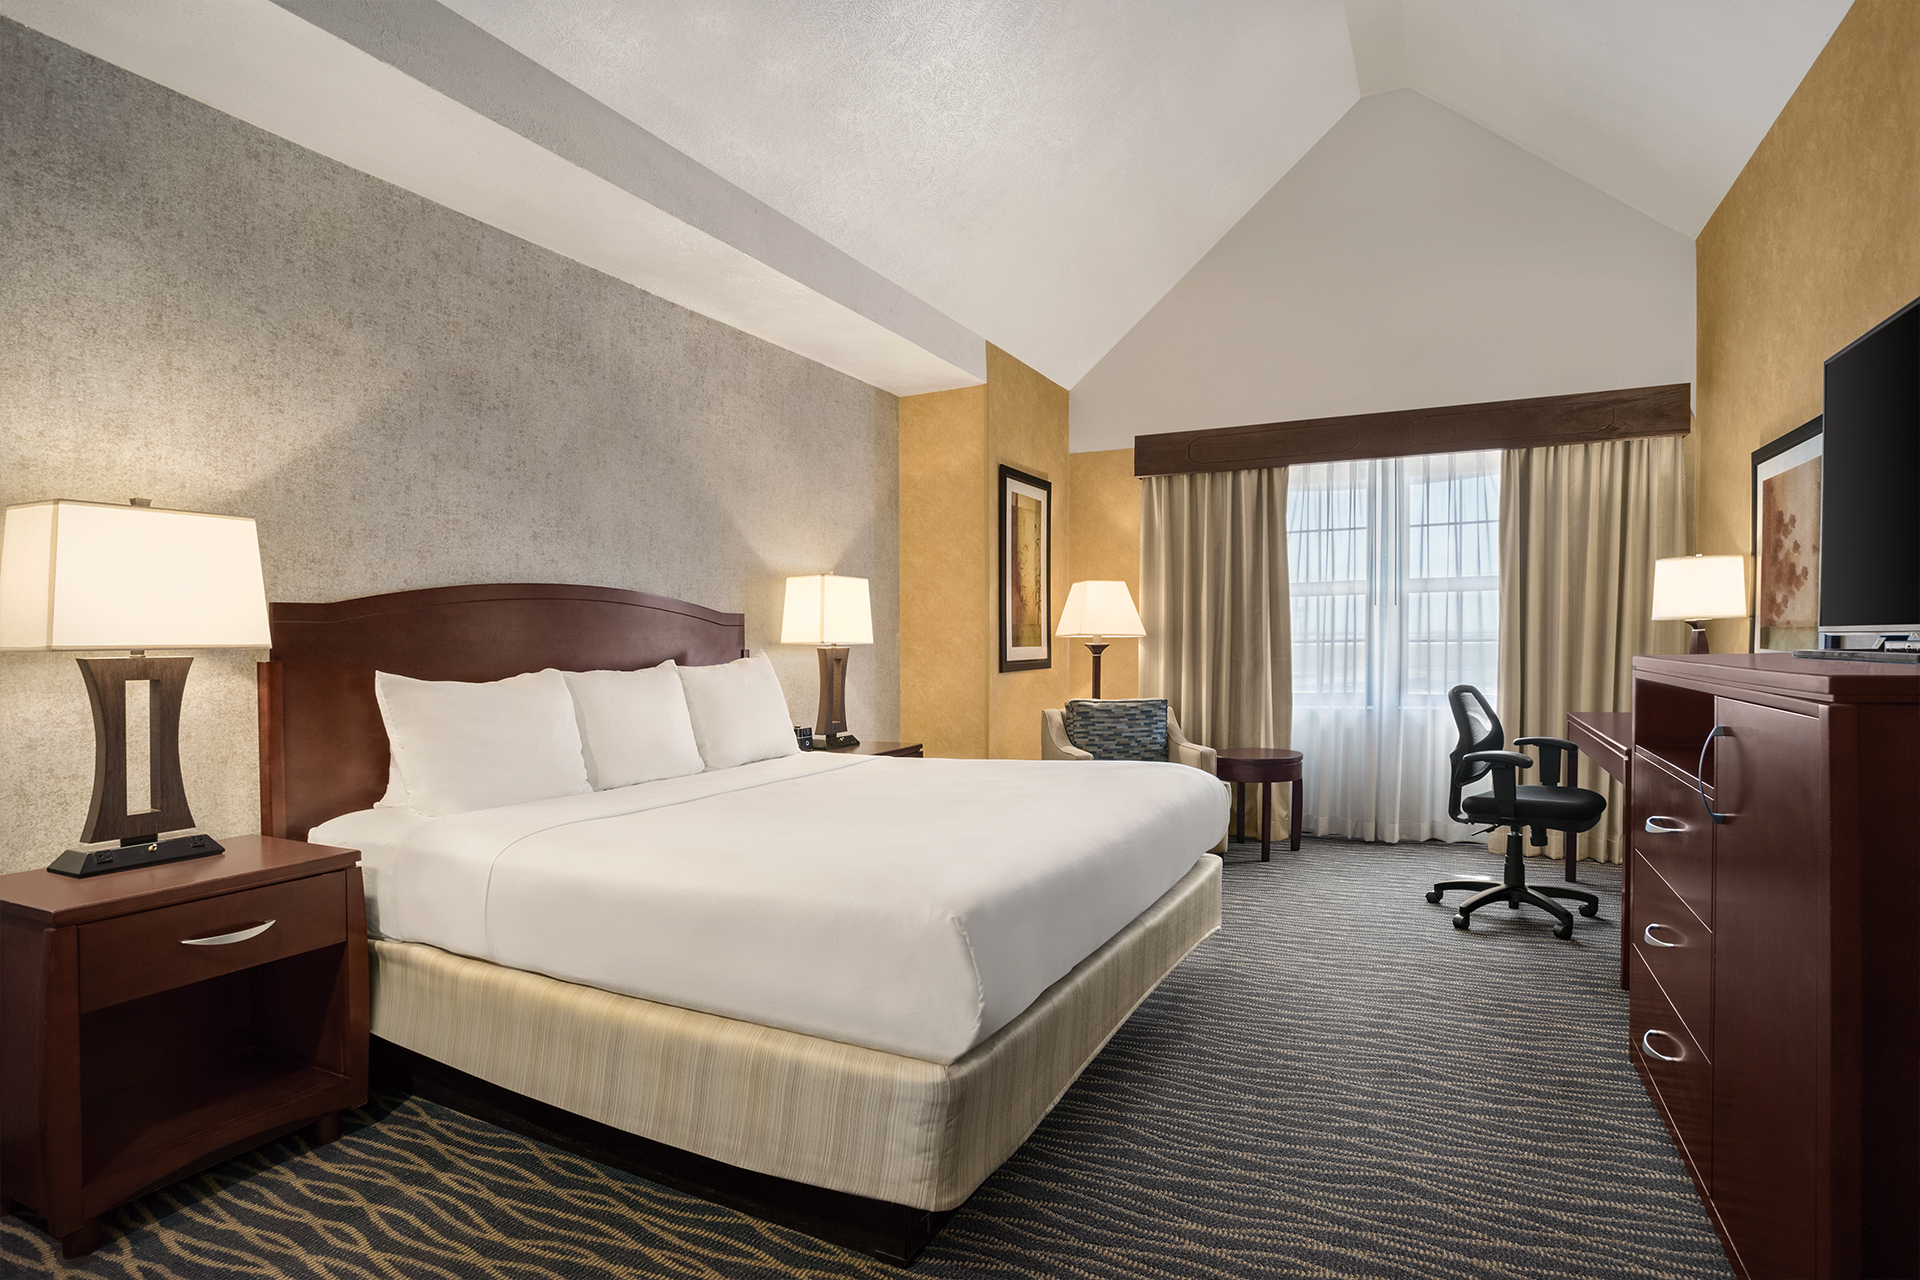 https://www.hotelsbyday.com/_data/default-hotel_image/2/10031/king-bed-room.jpg